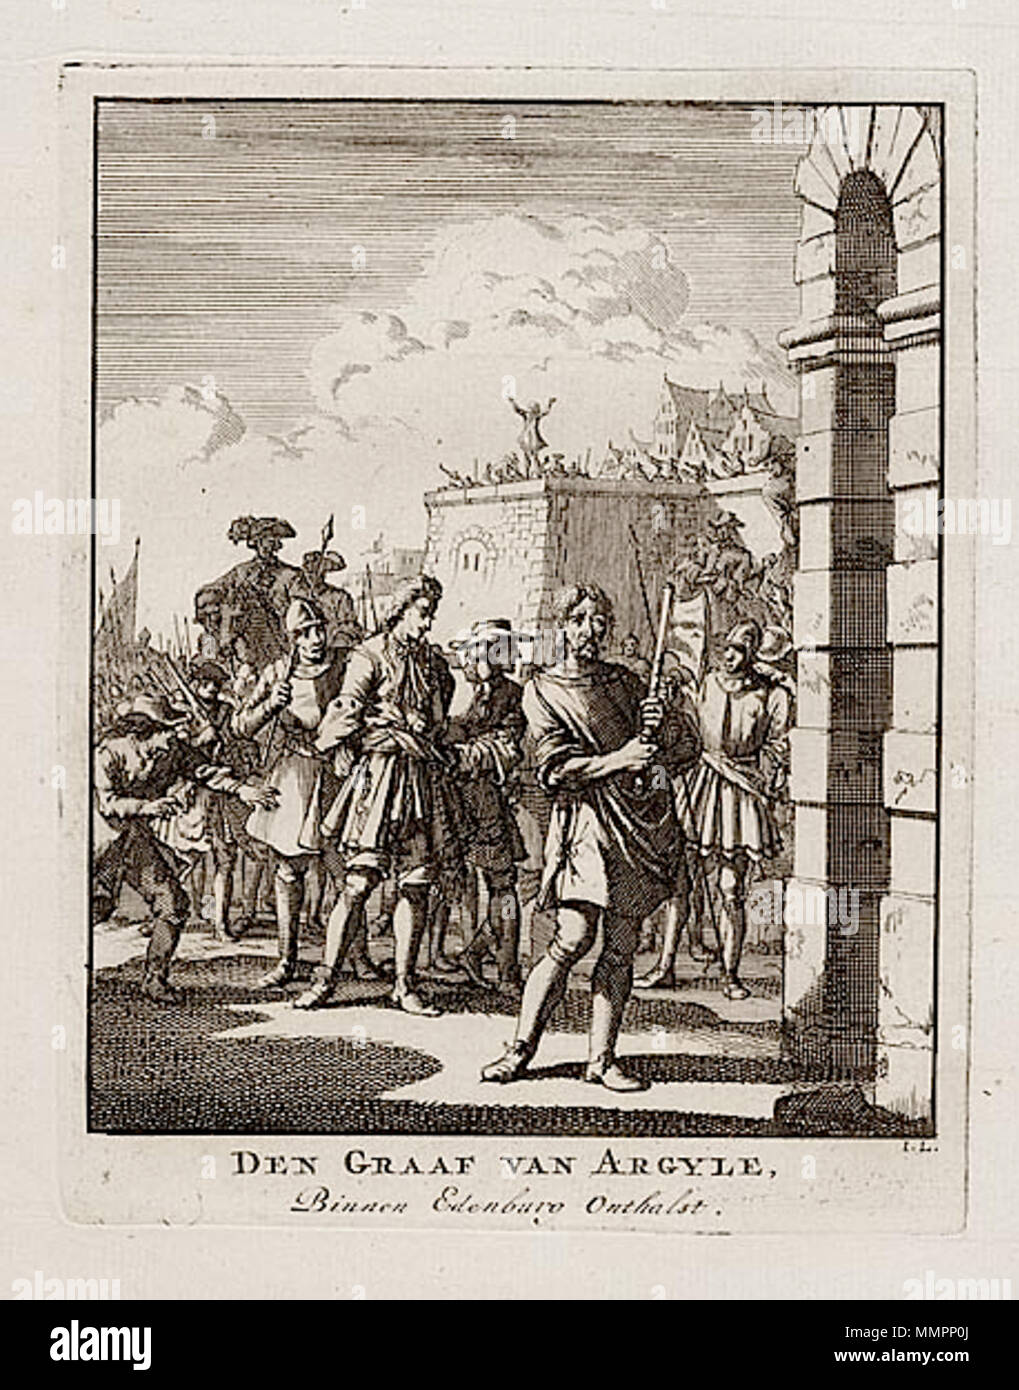 English Den Graaf Van Argyle Binnen Edenburo Onthalst Etching By